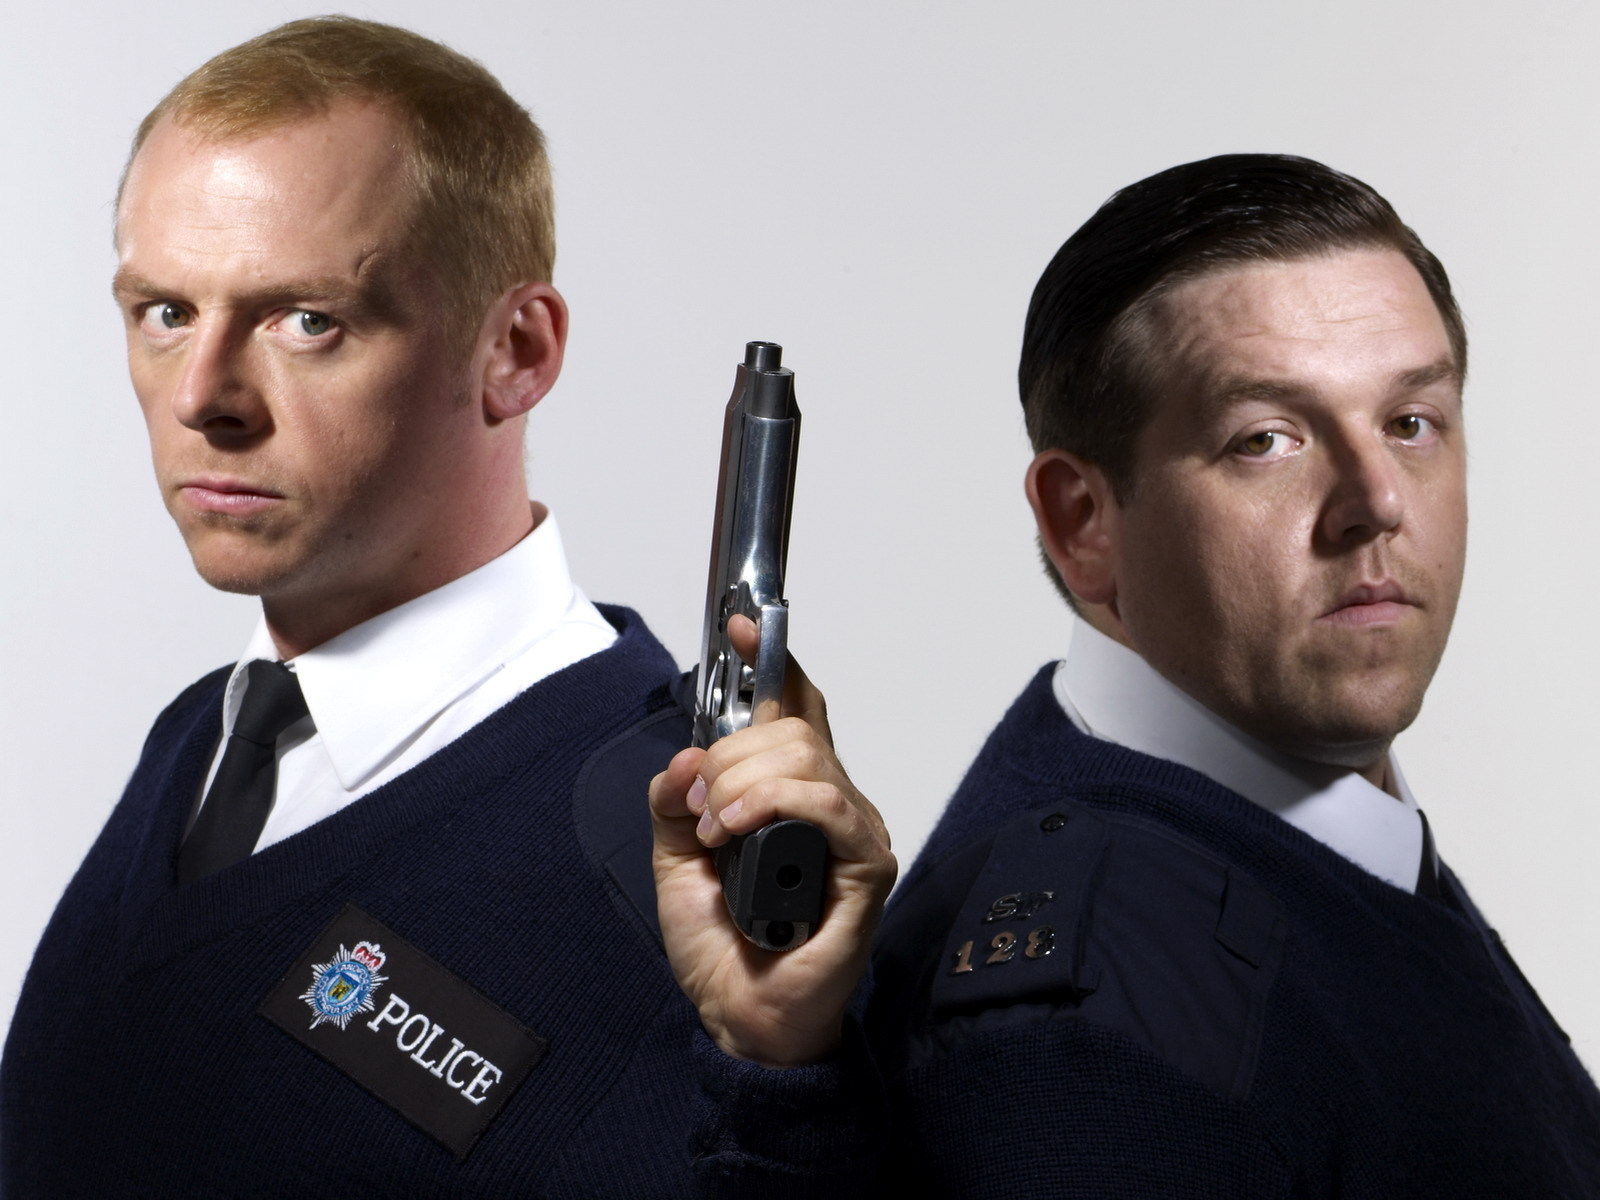 hot fuzz movie hd wallpaper 2379